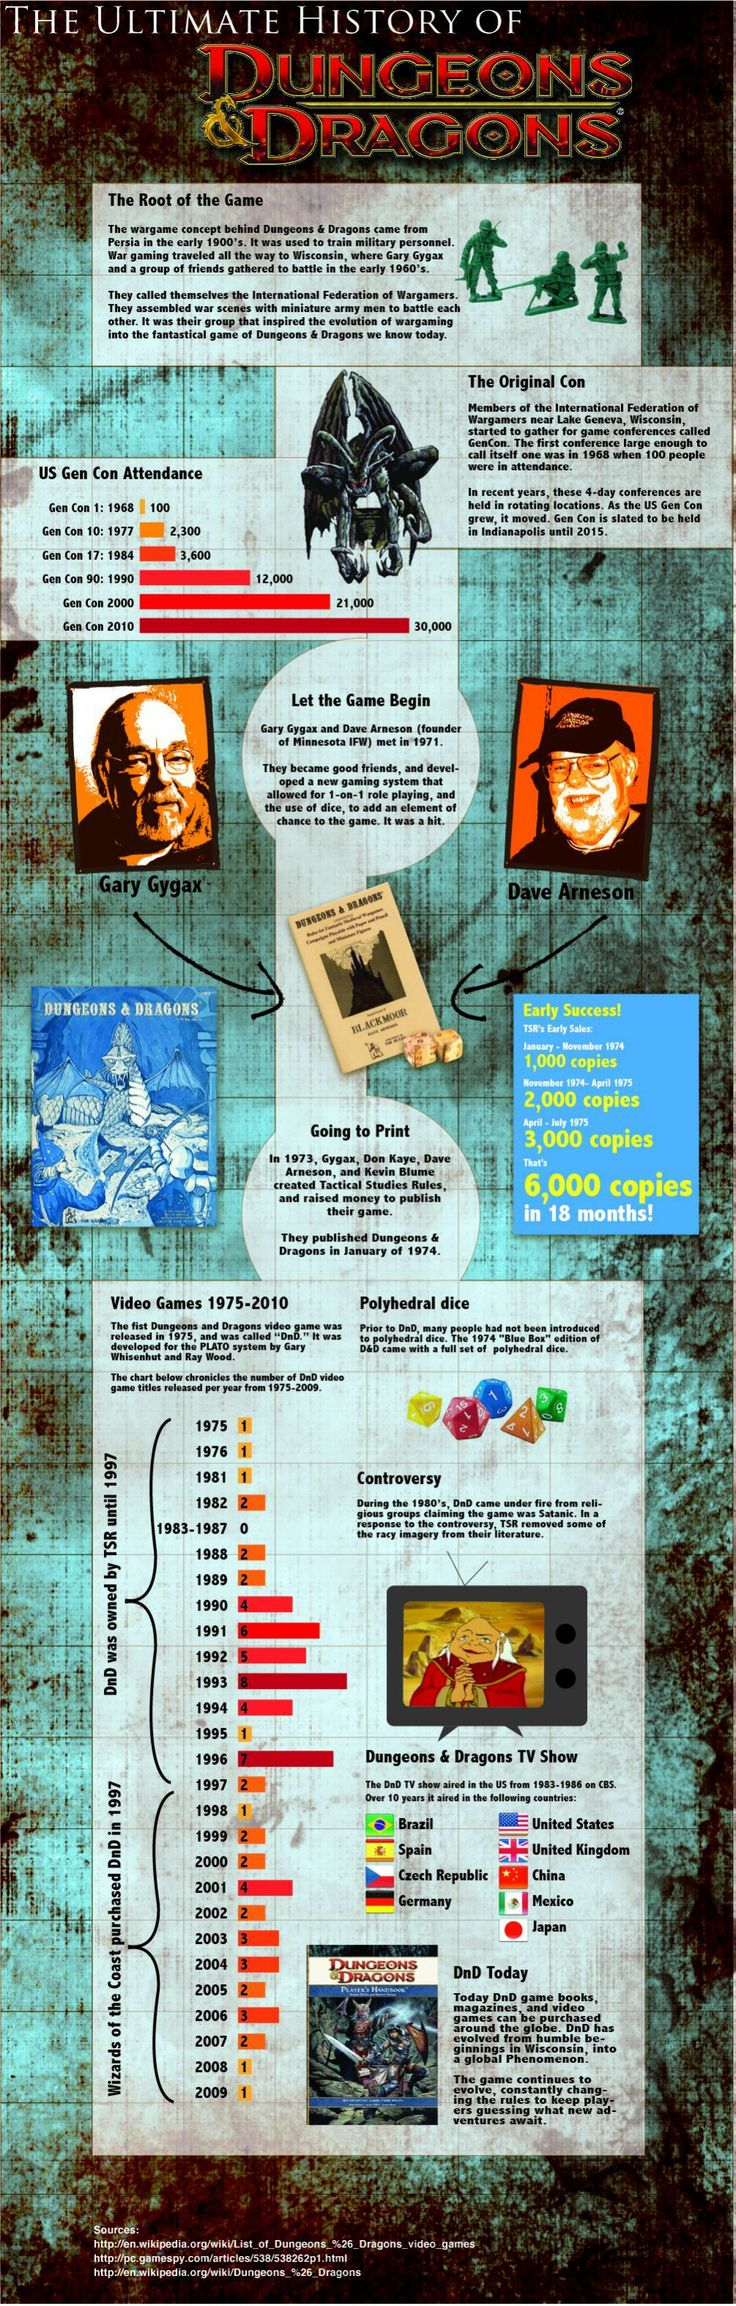 The Ultimate History of Dungeons & Dragons   Visit our new infographic gallery at visualoop.com/